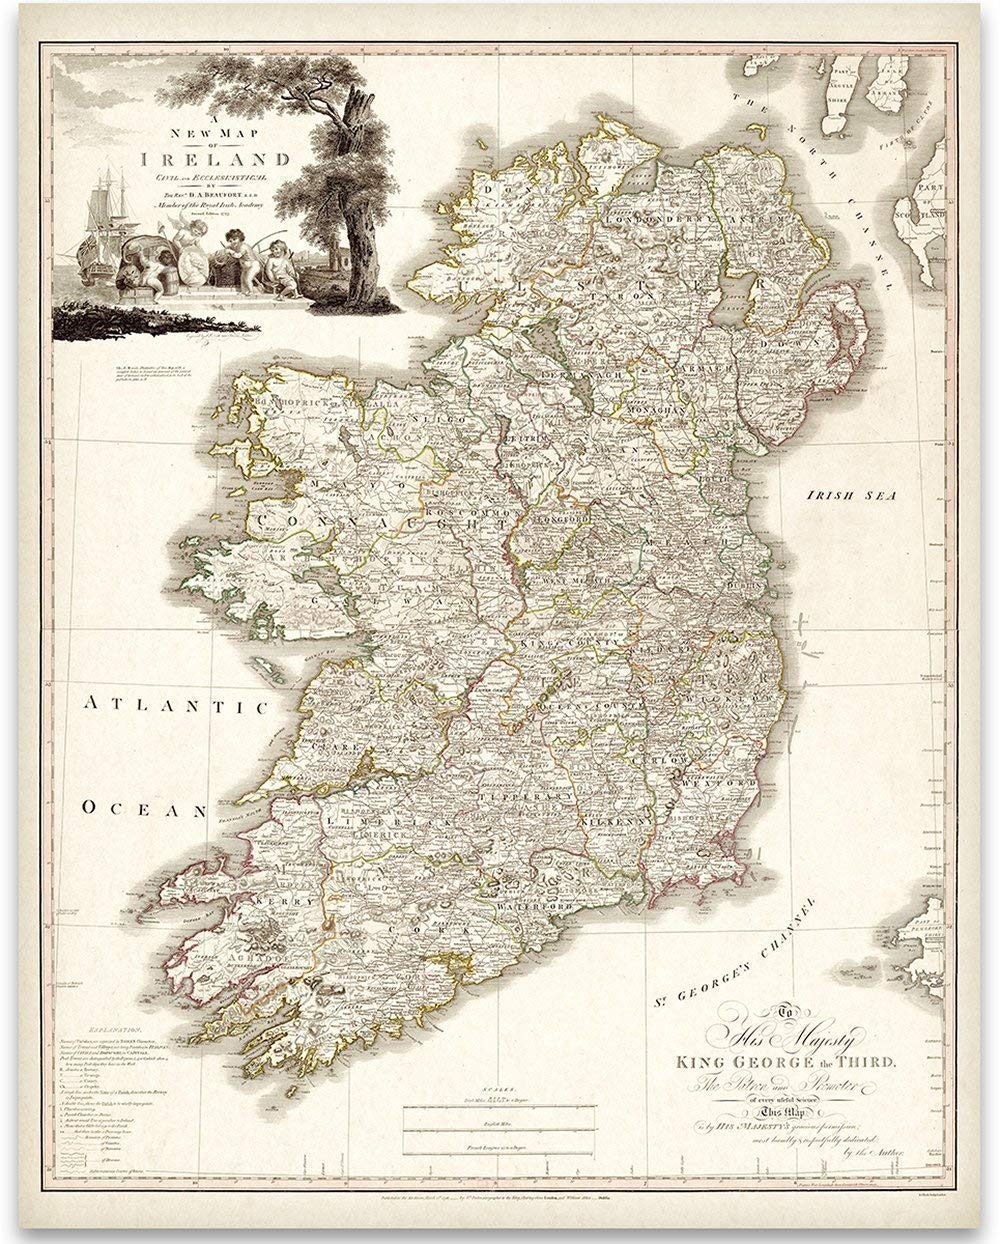 Print Map Of Ireland.Map Of Ireland 1792 11x14 Unframed Art Print Great Home Decor Under 15 For Irish Ancestry